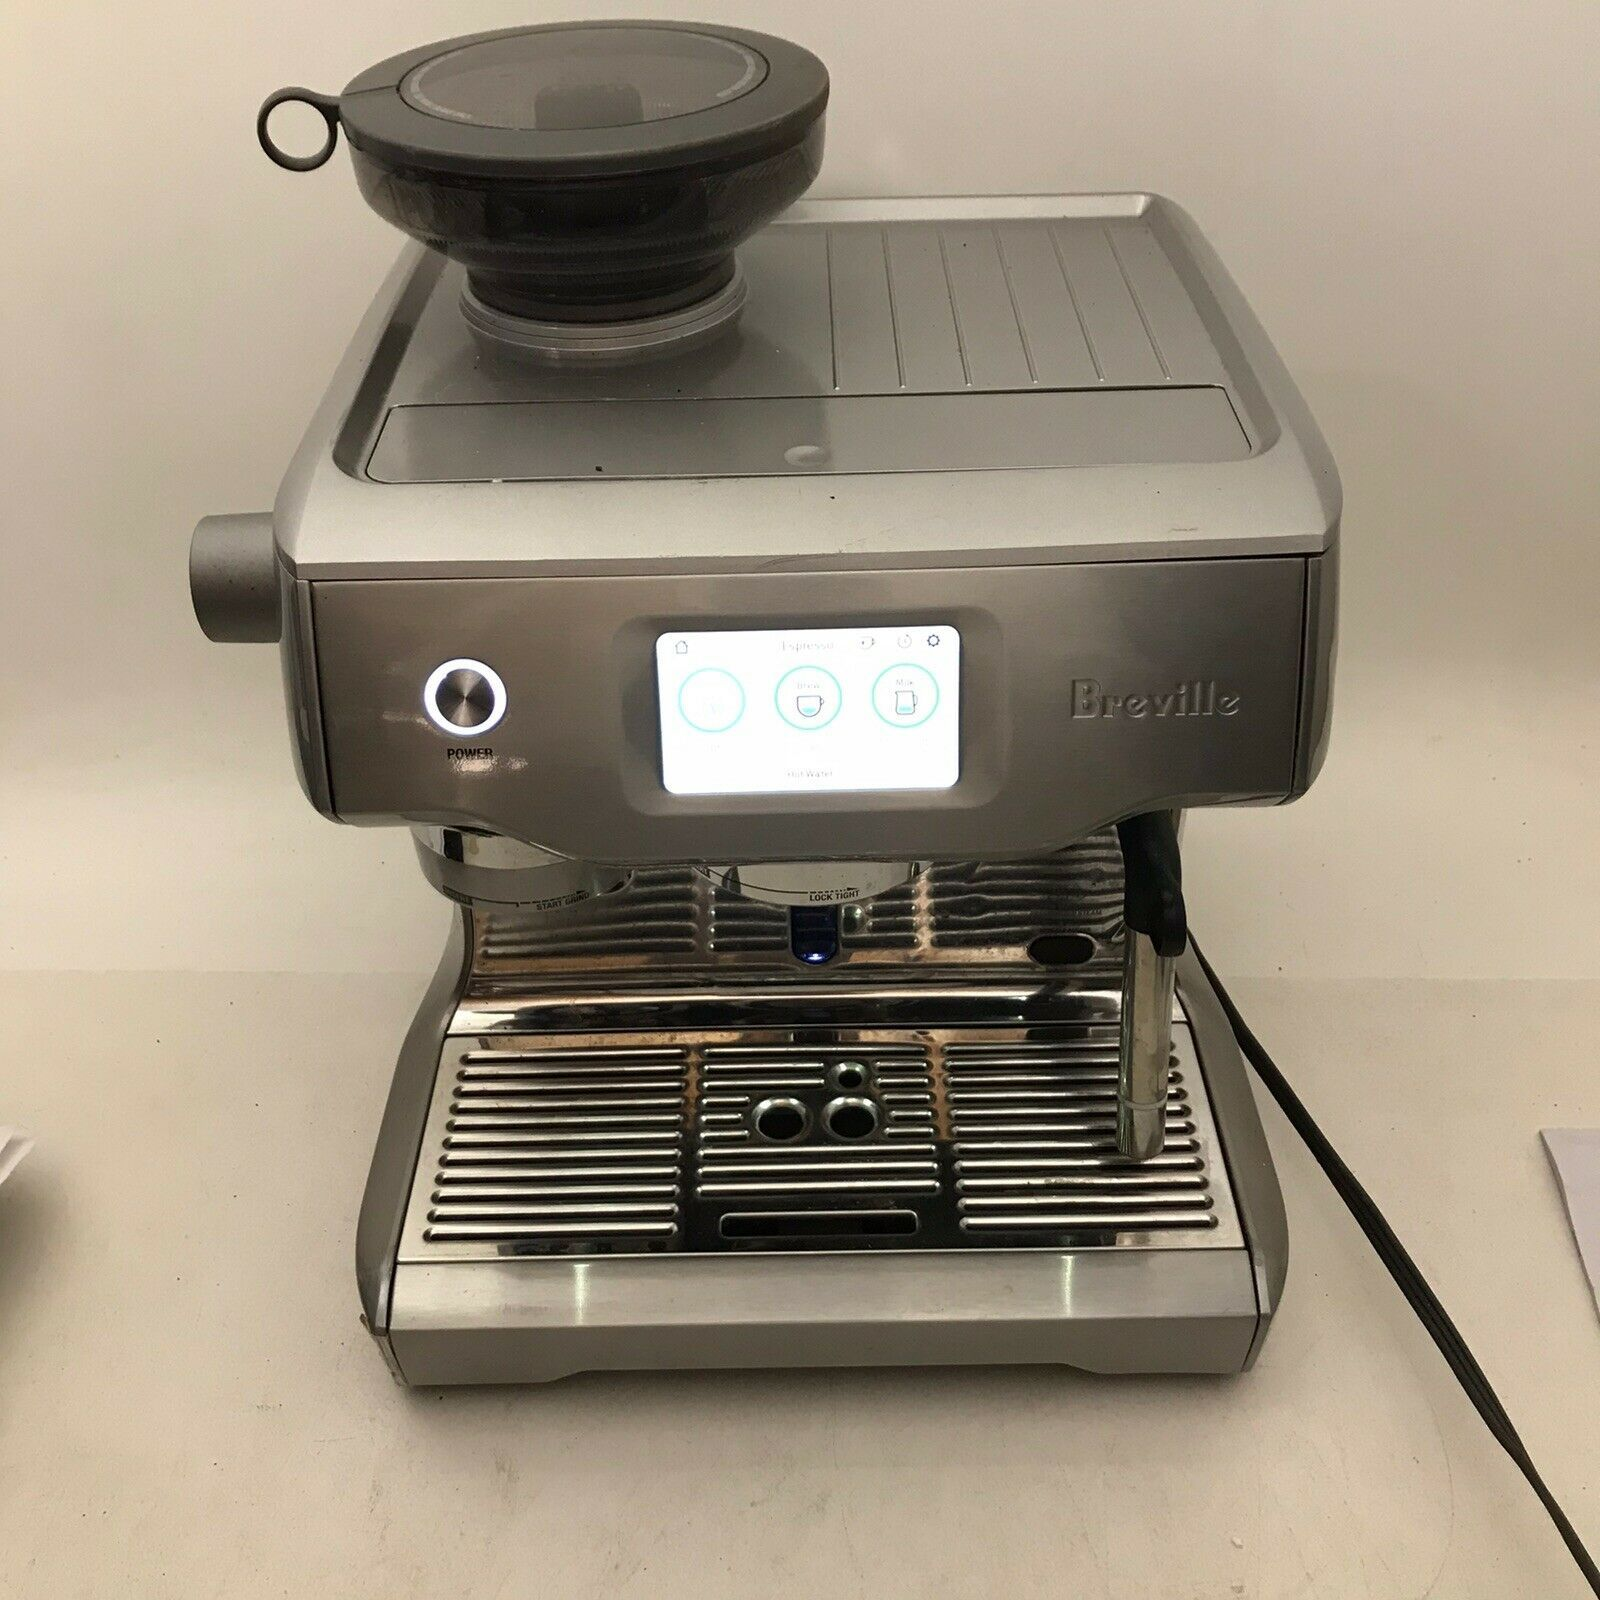 Details About Breville Bes990bss Oracle Touch Fully Automatic Espresso Machine With Grinder In 2020 Espresso Espresso Machine Kitchen Best Espresso Machine